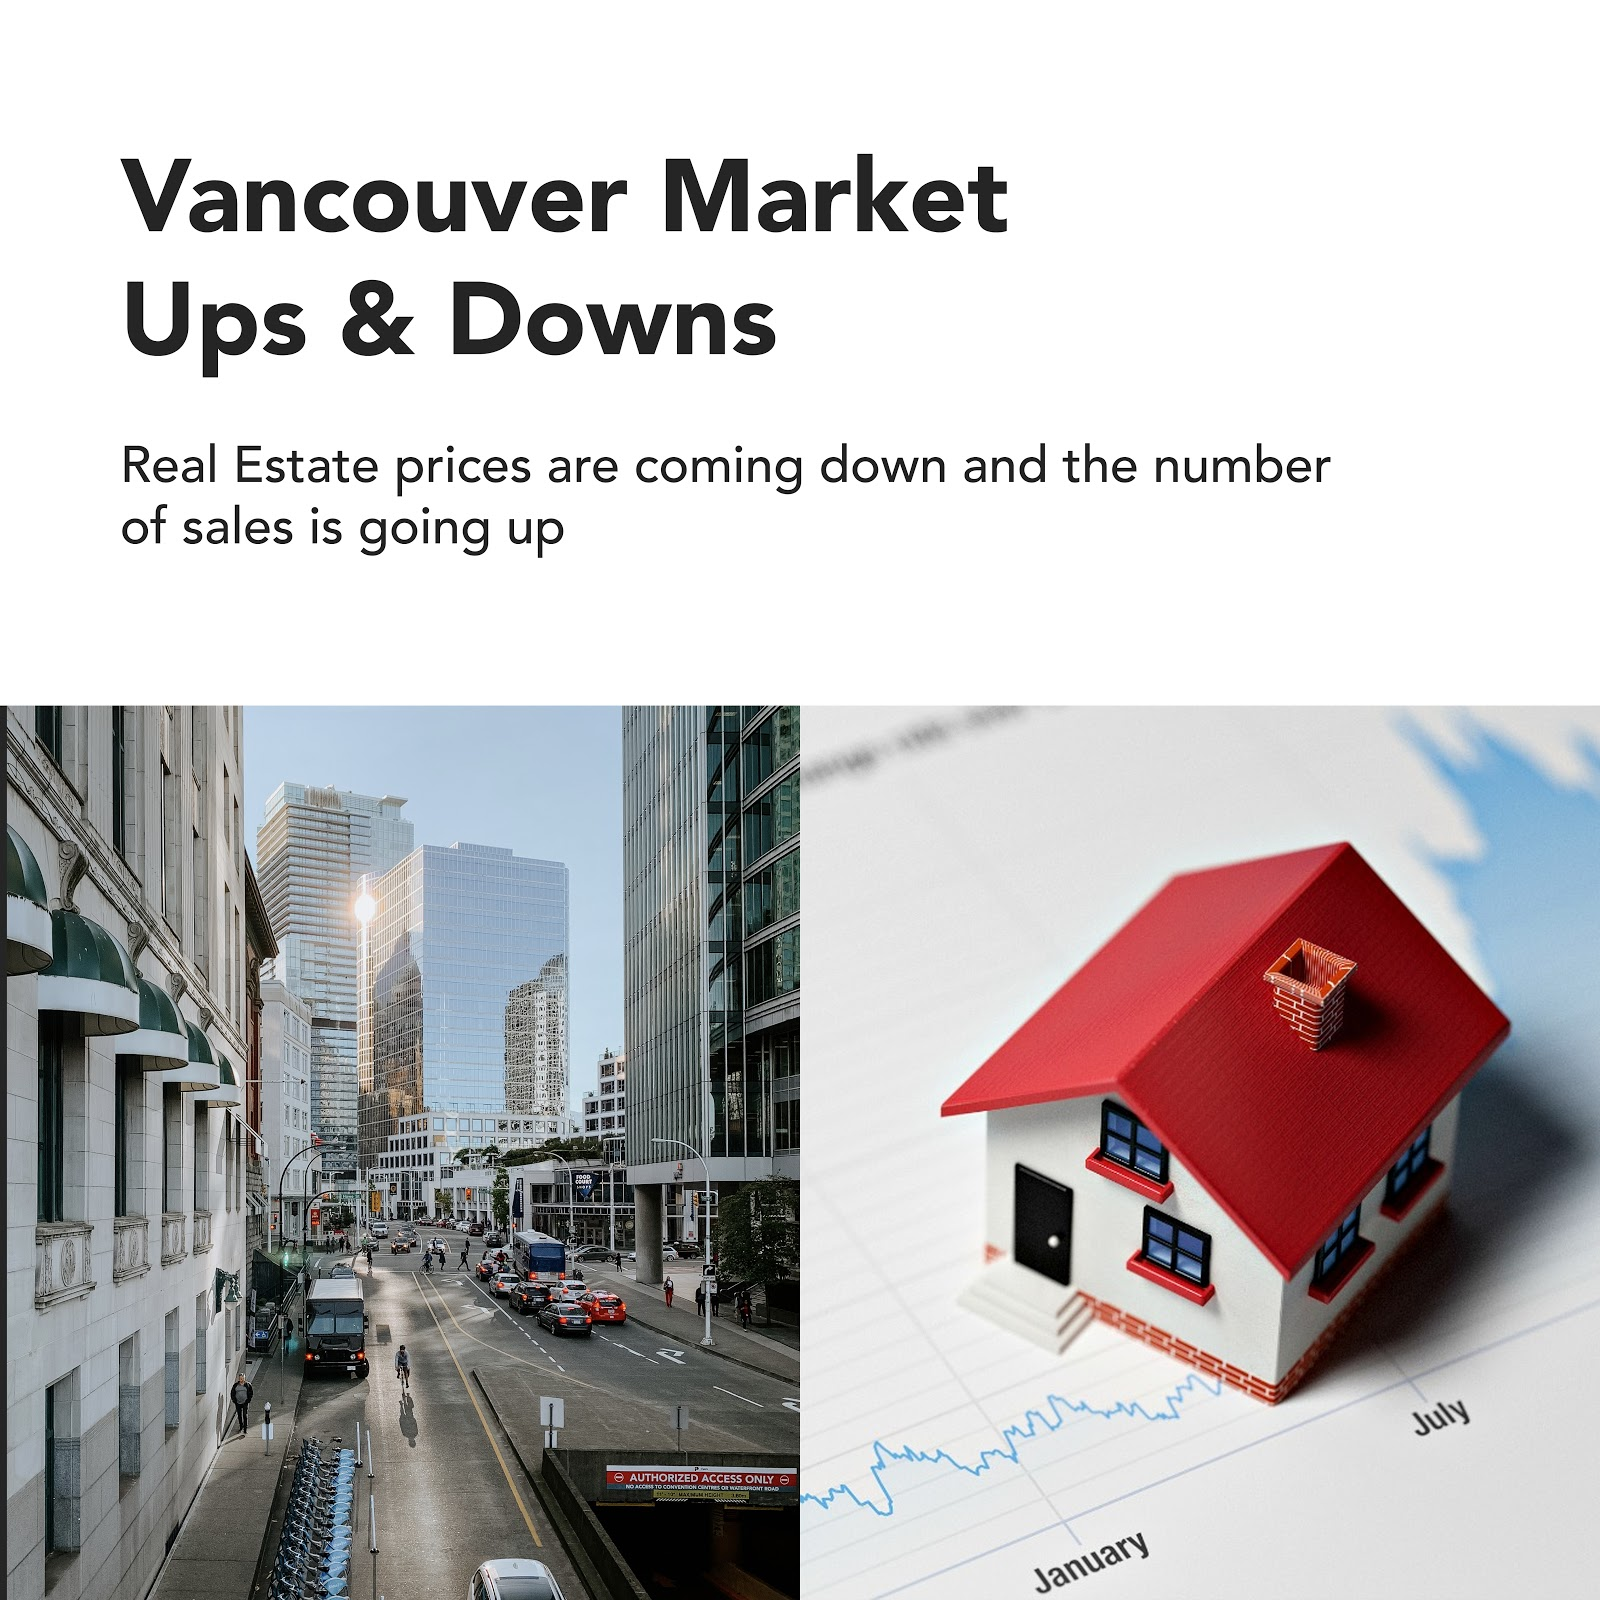 greaterpropertygroup.com real estate canada vancouver housing condos houses